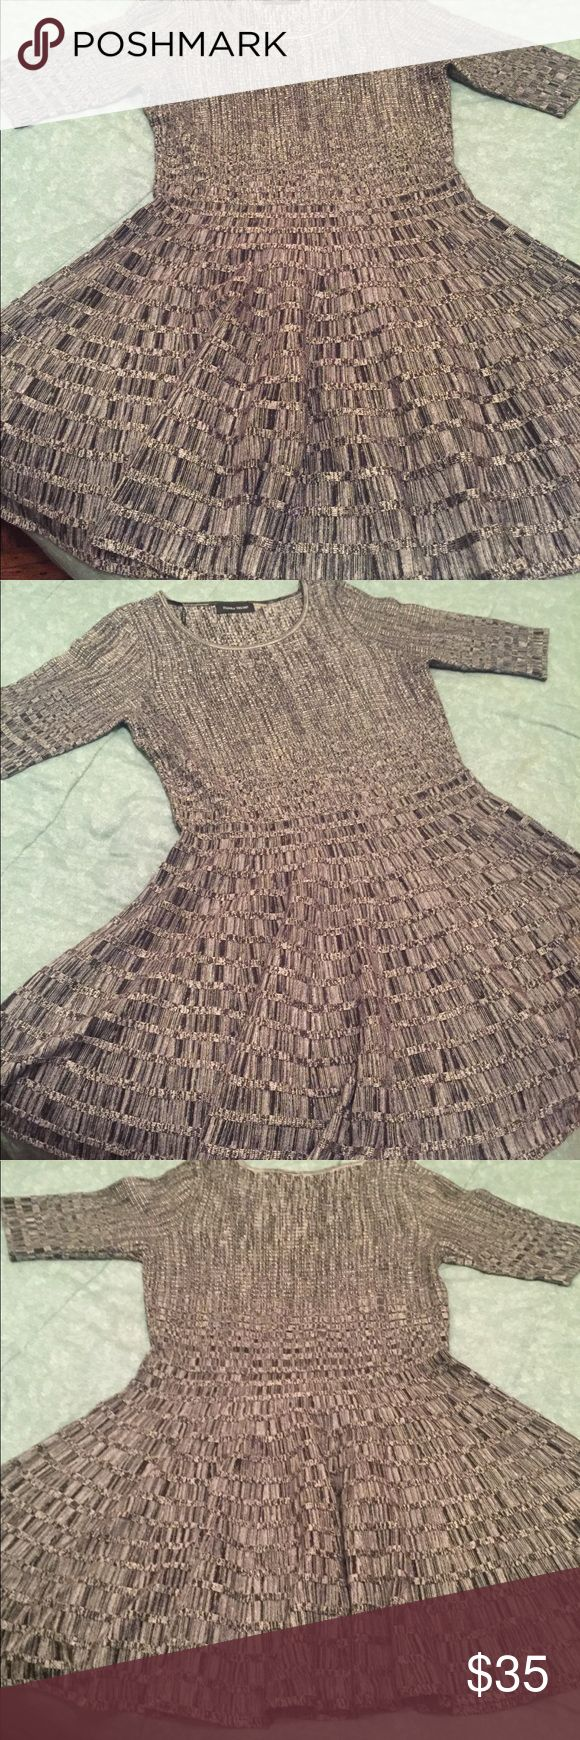 Ivanka Trump dress New never worn lost tags. Checkered Grey and black dress skater style dress hits below the knee with short sleeves sweater like material perfect for a date, going out with the girls, and or work. Ivanka Trump Dresses High Low